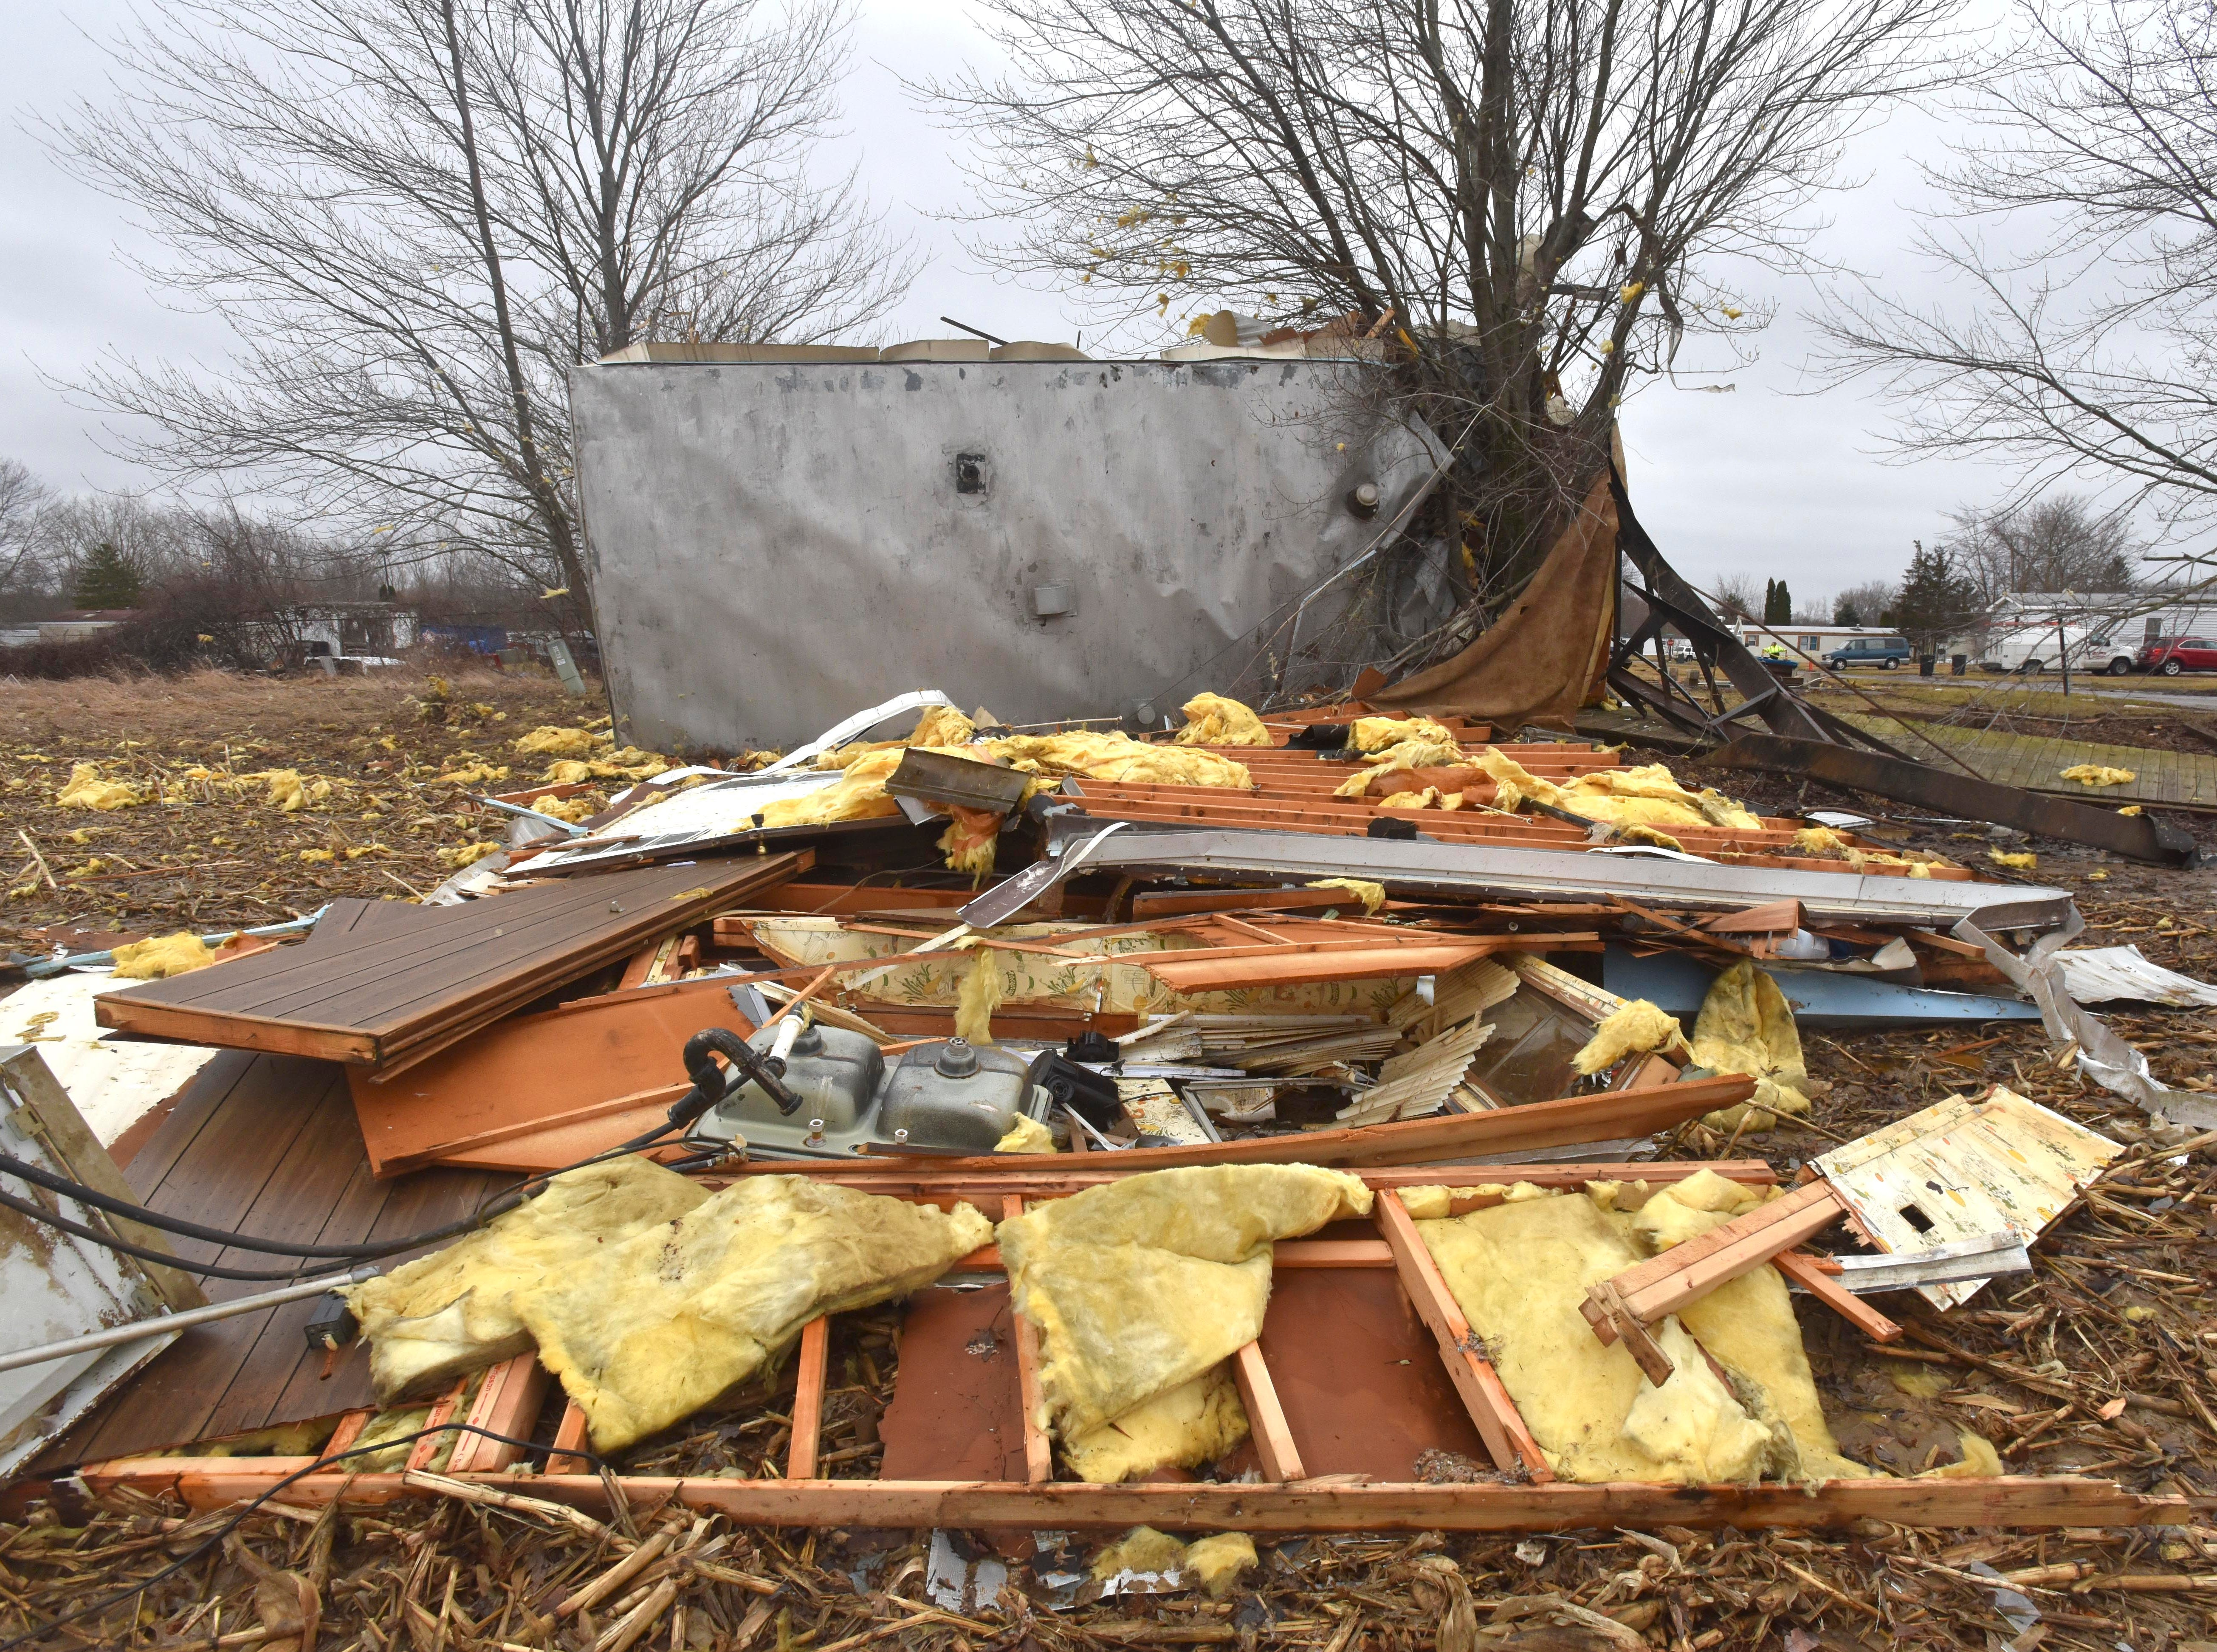 The wreckage of a mobile home in Mount Morris in Genesee County is seen Friday, after a tornado Thursday night lifted it off its foundation. Authorities say two tornadoes swept through mid-Michigan, damaging more than 60 homes and knocking out power to thousands.